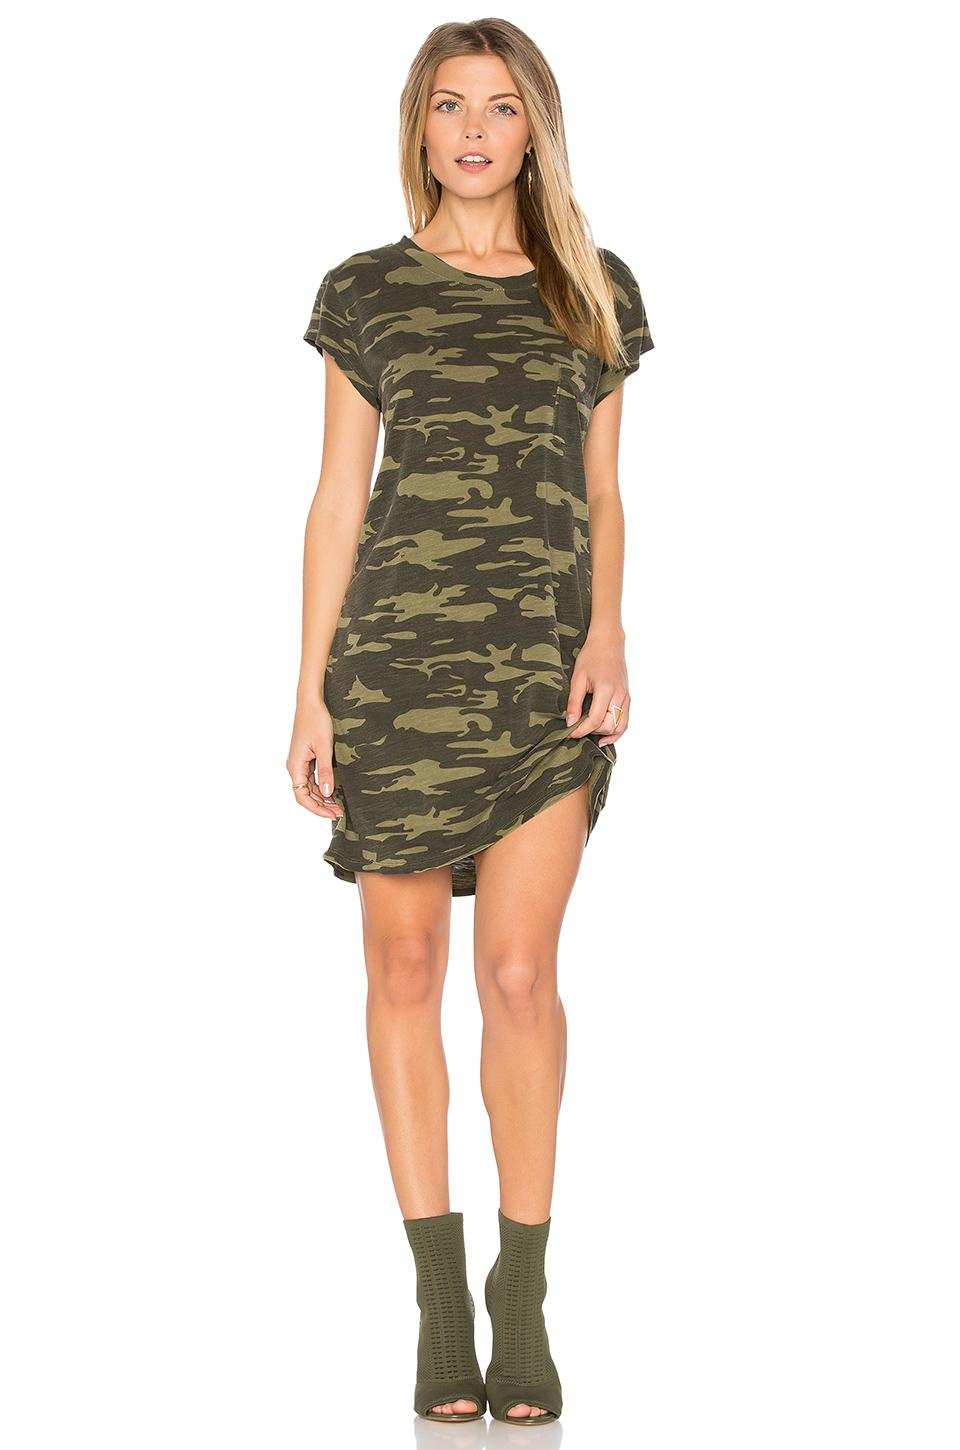 Lyst sanctuary camo t shirt dress in green for Green camo shirt outfit